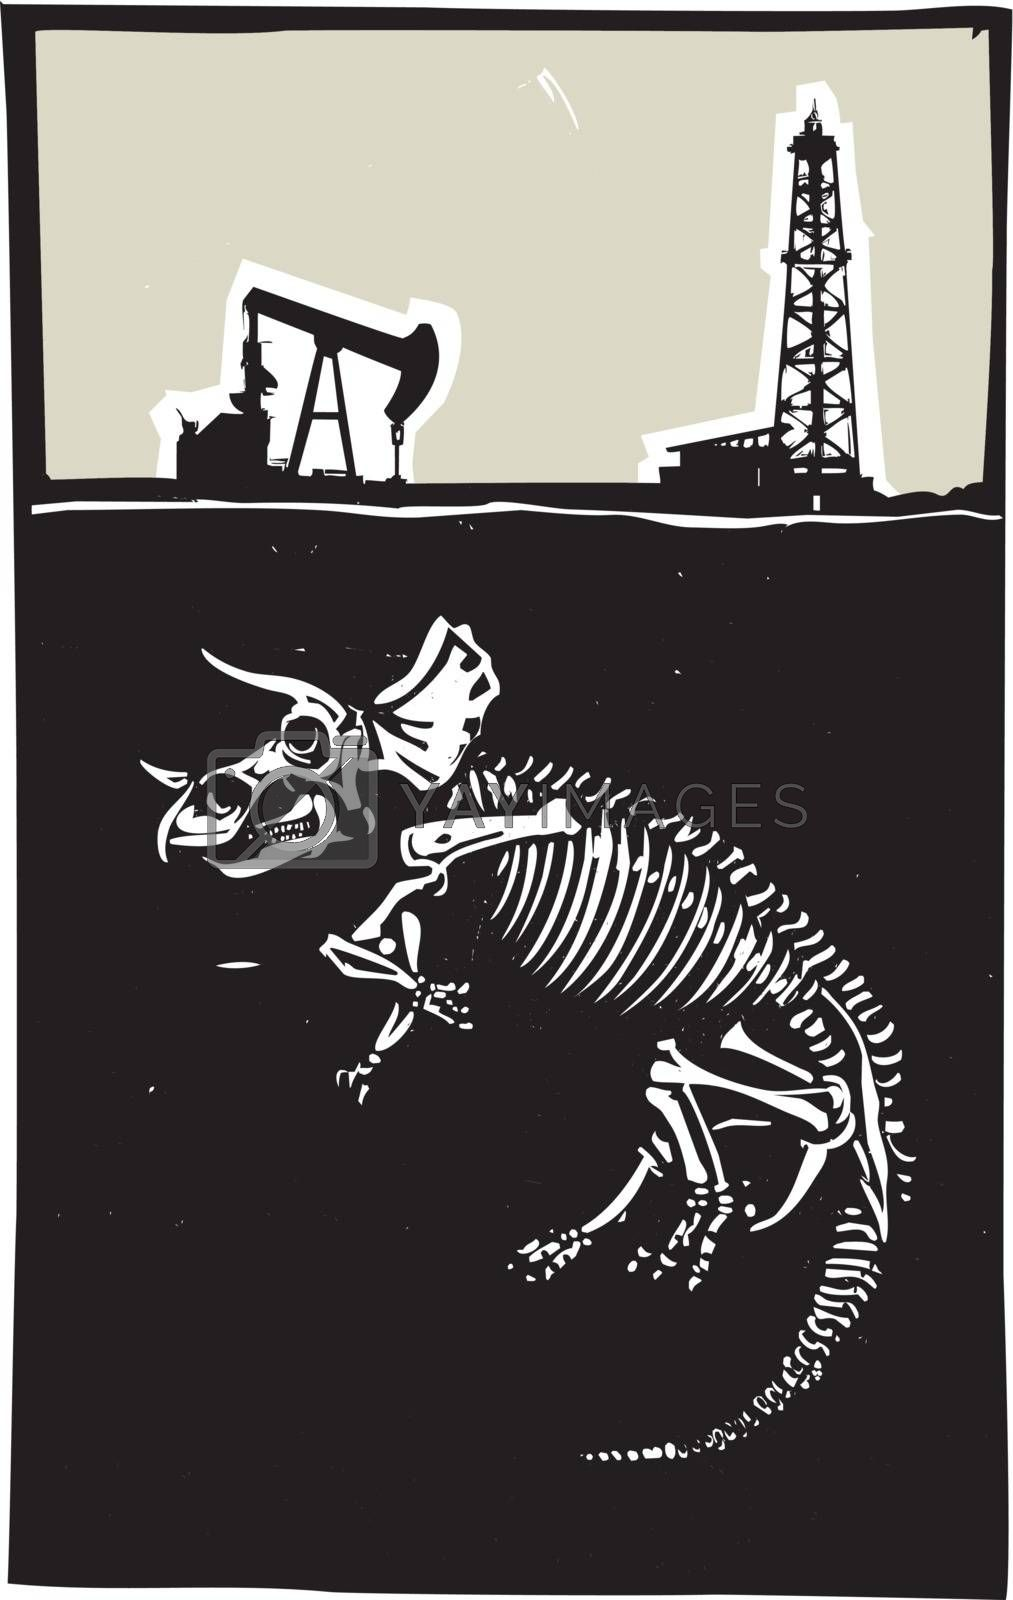 Woodcut style image of a fossil of a Triceratops dinosaur with an oil rig and pump jack.